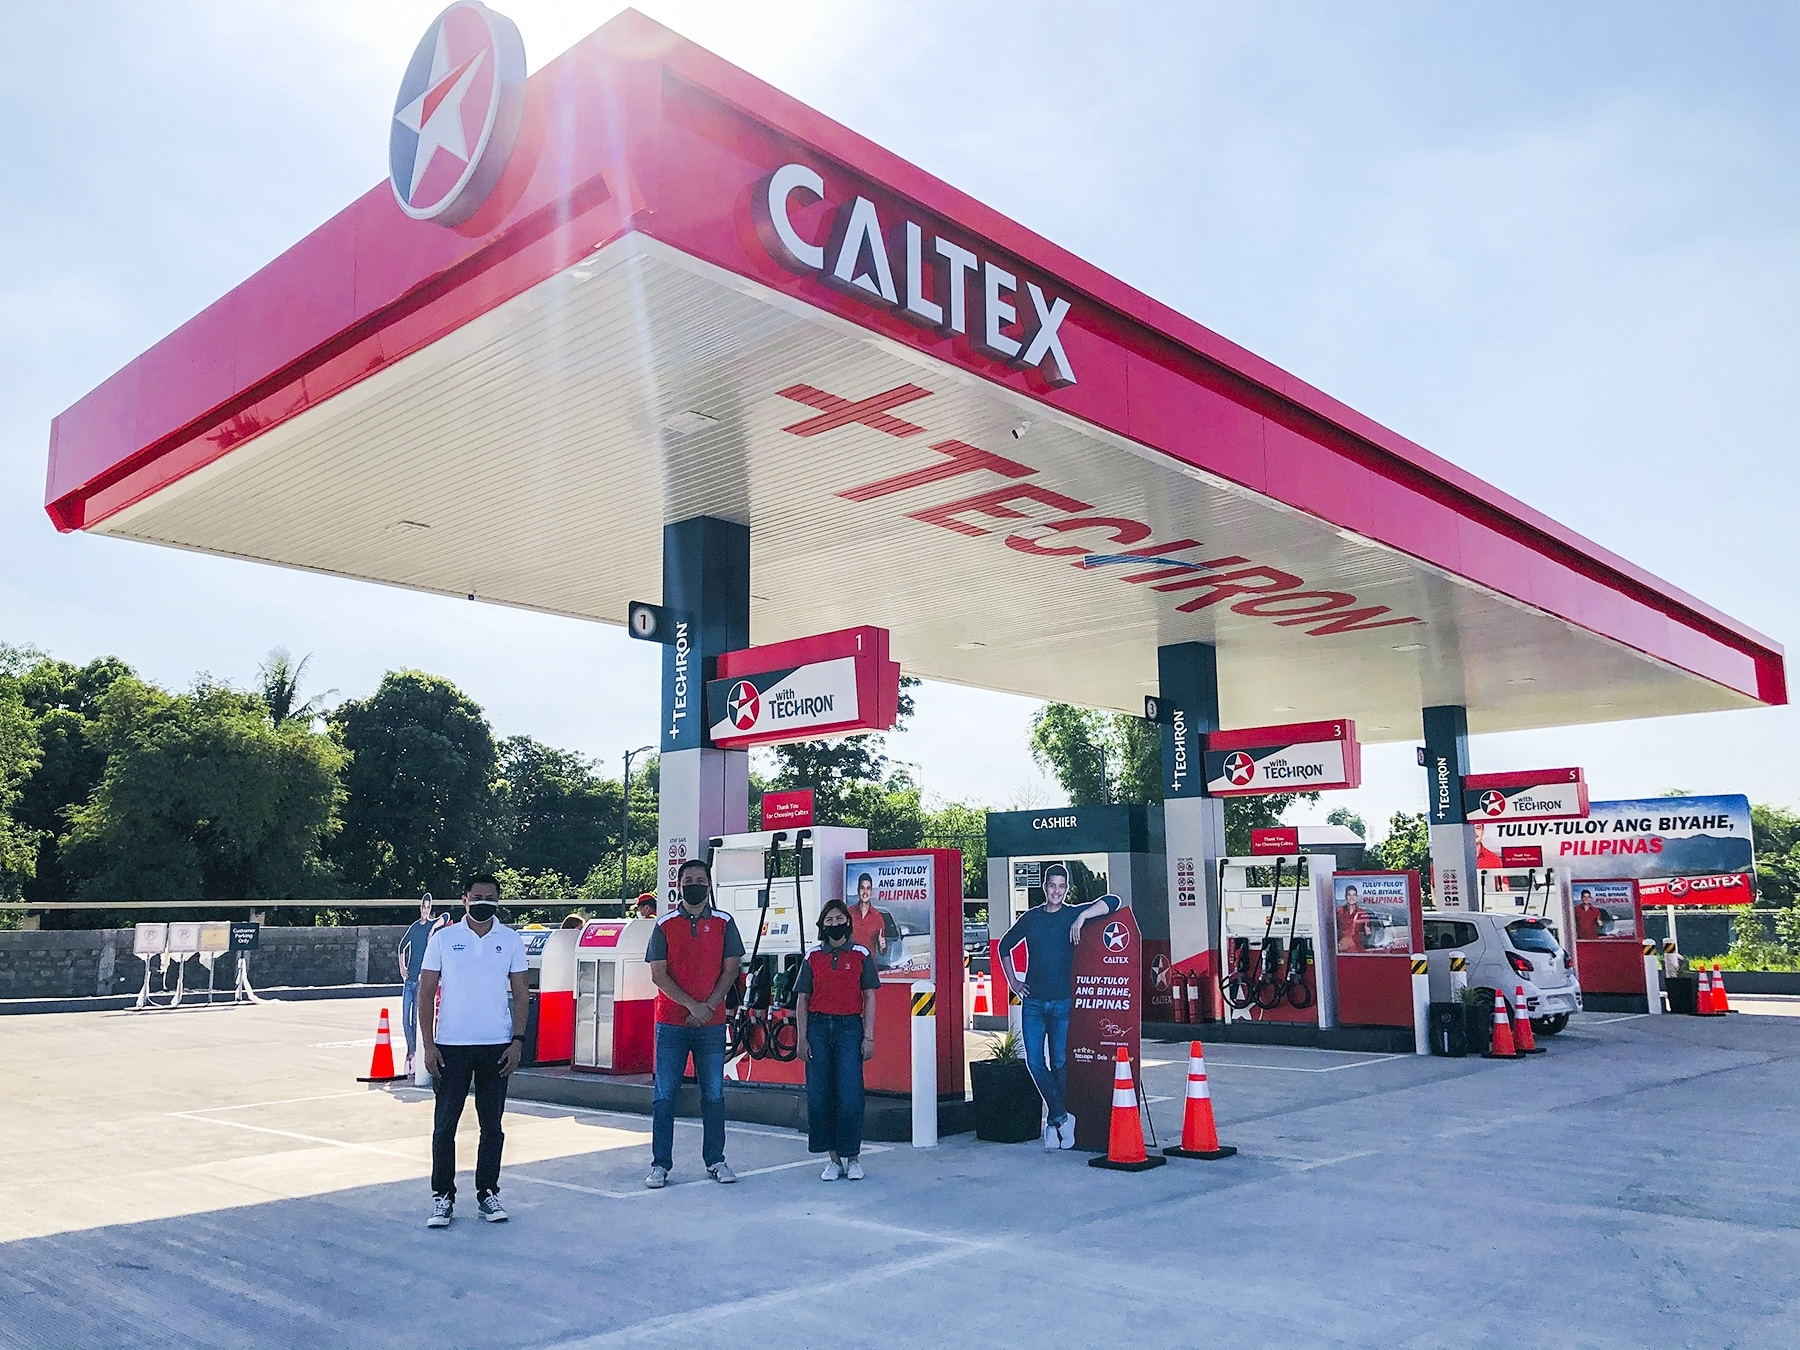 Caltex boosts network growth in Q2 of 2021